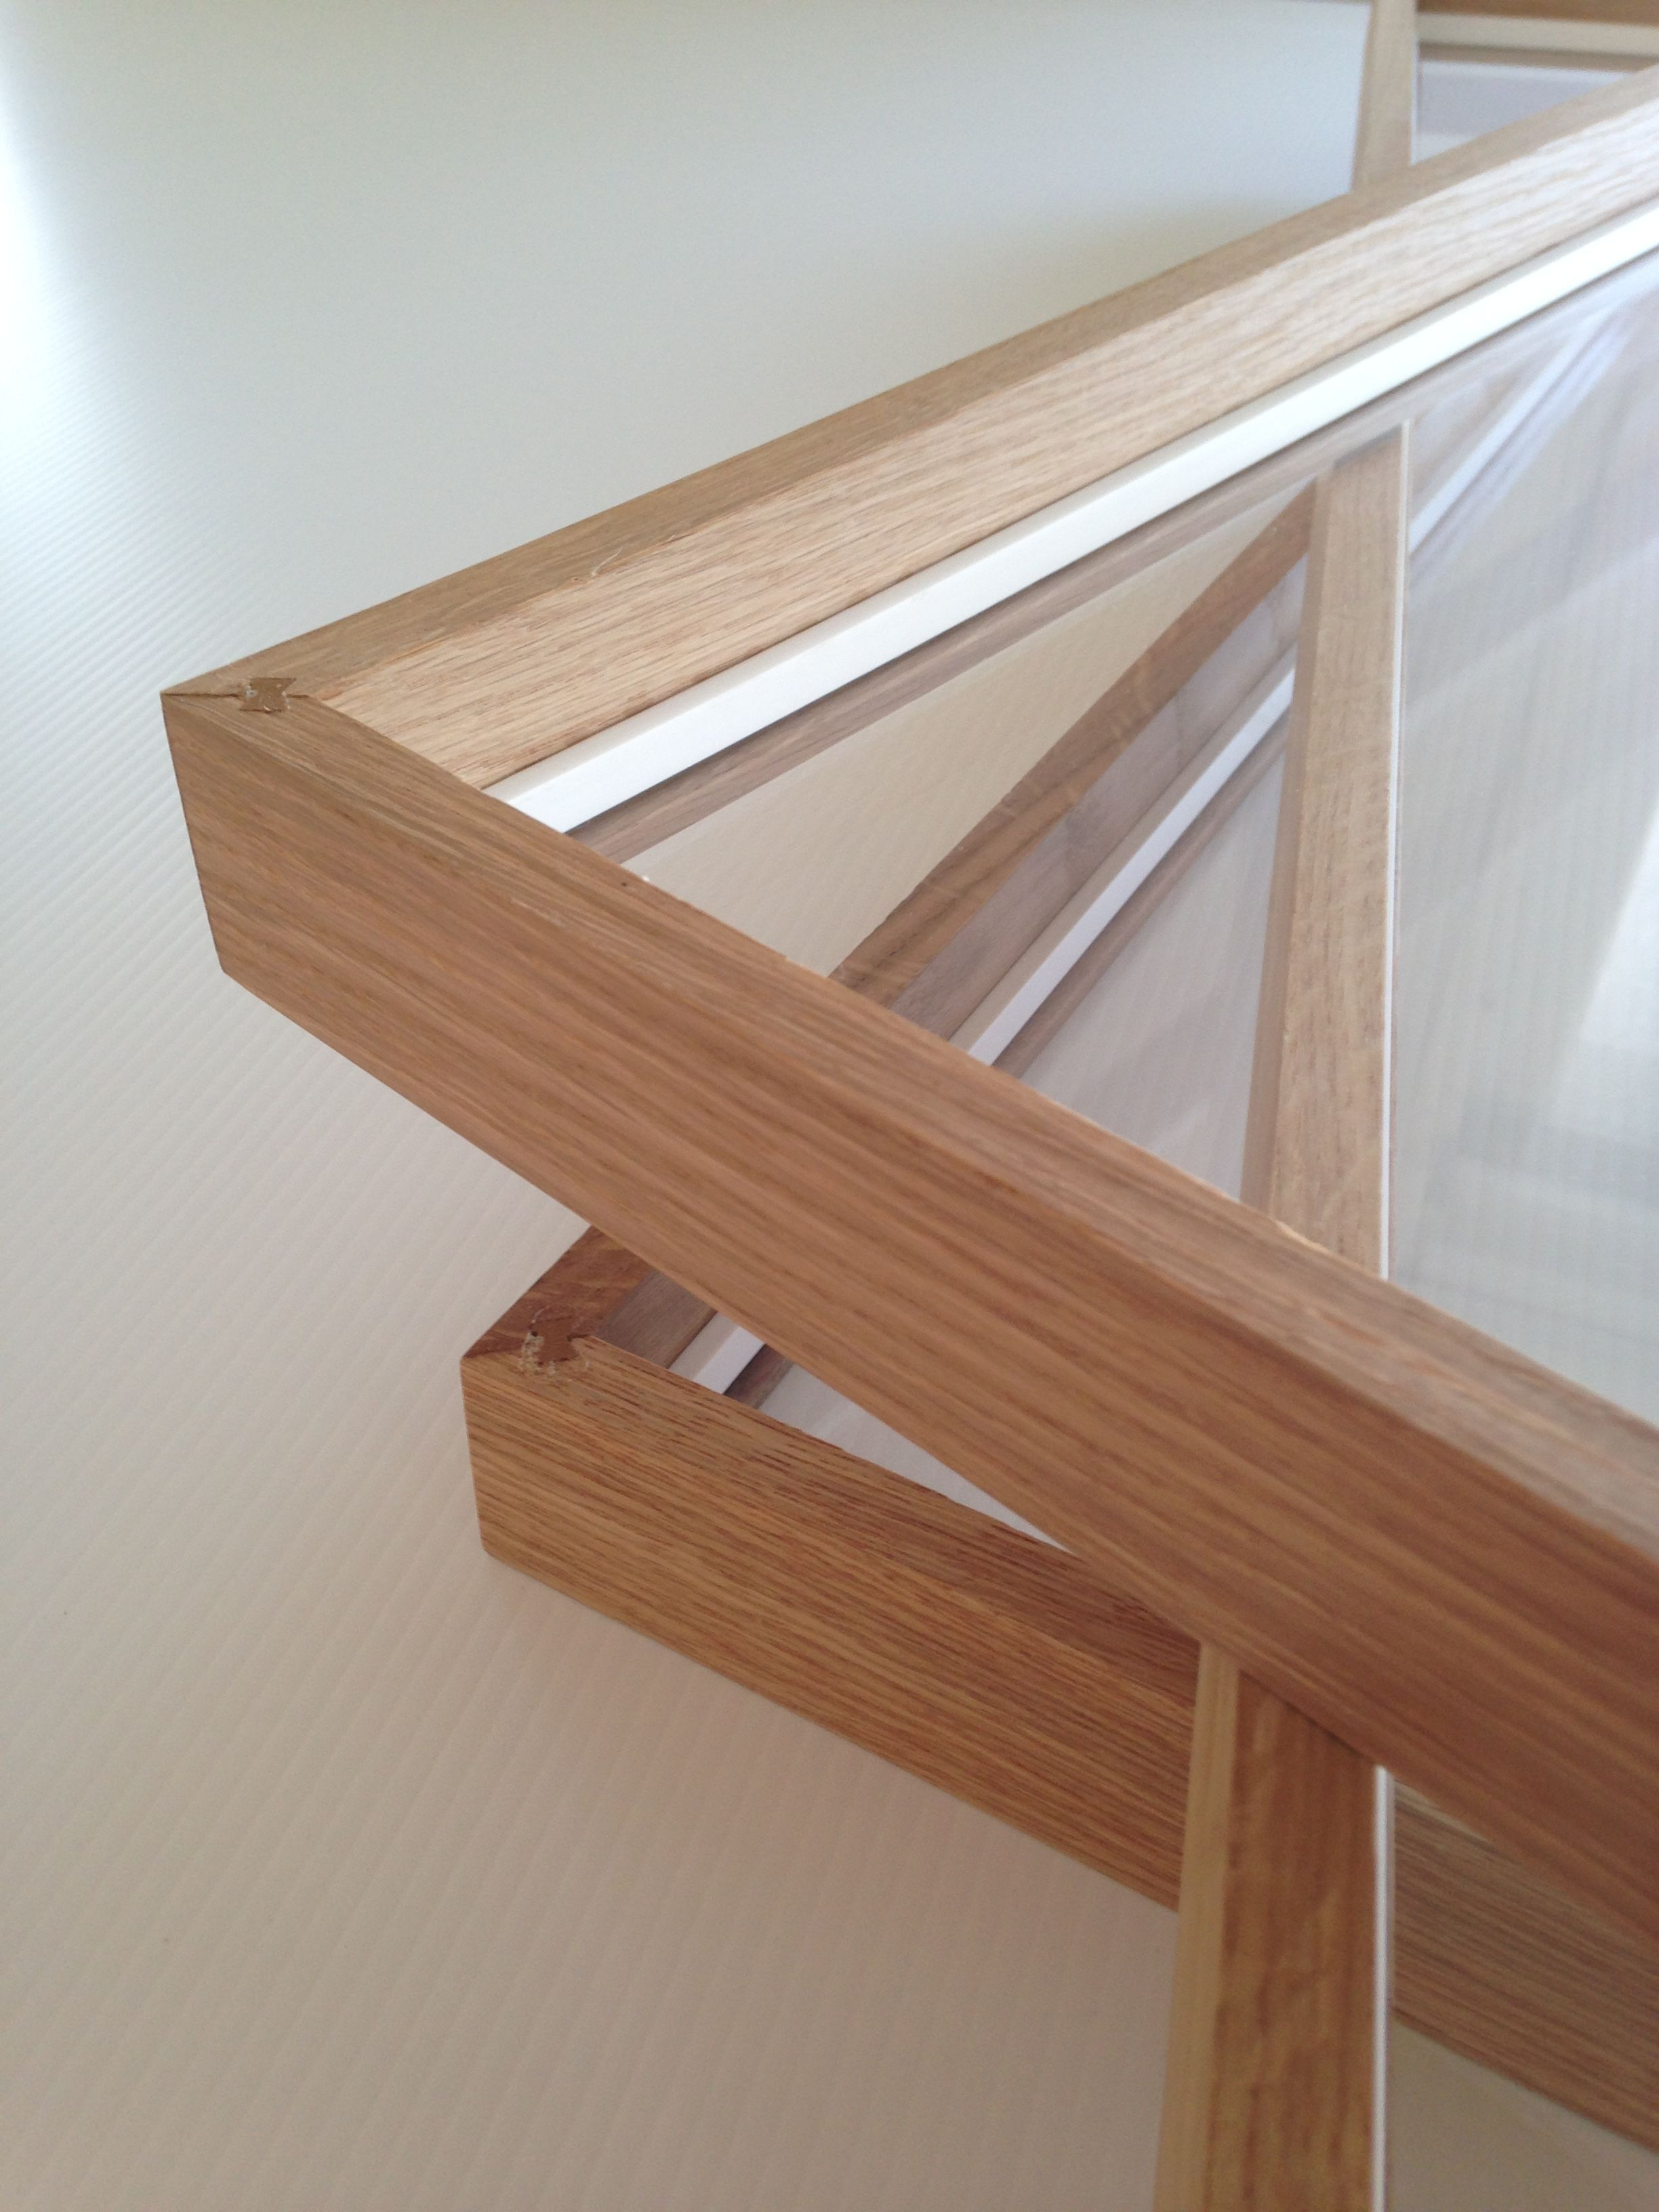 American oak frames with spacers in place ready to box frame artwork ...